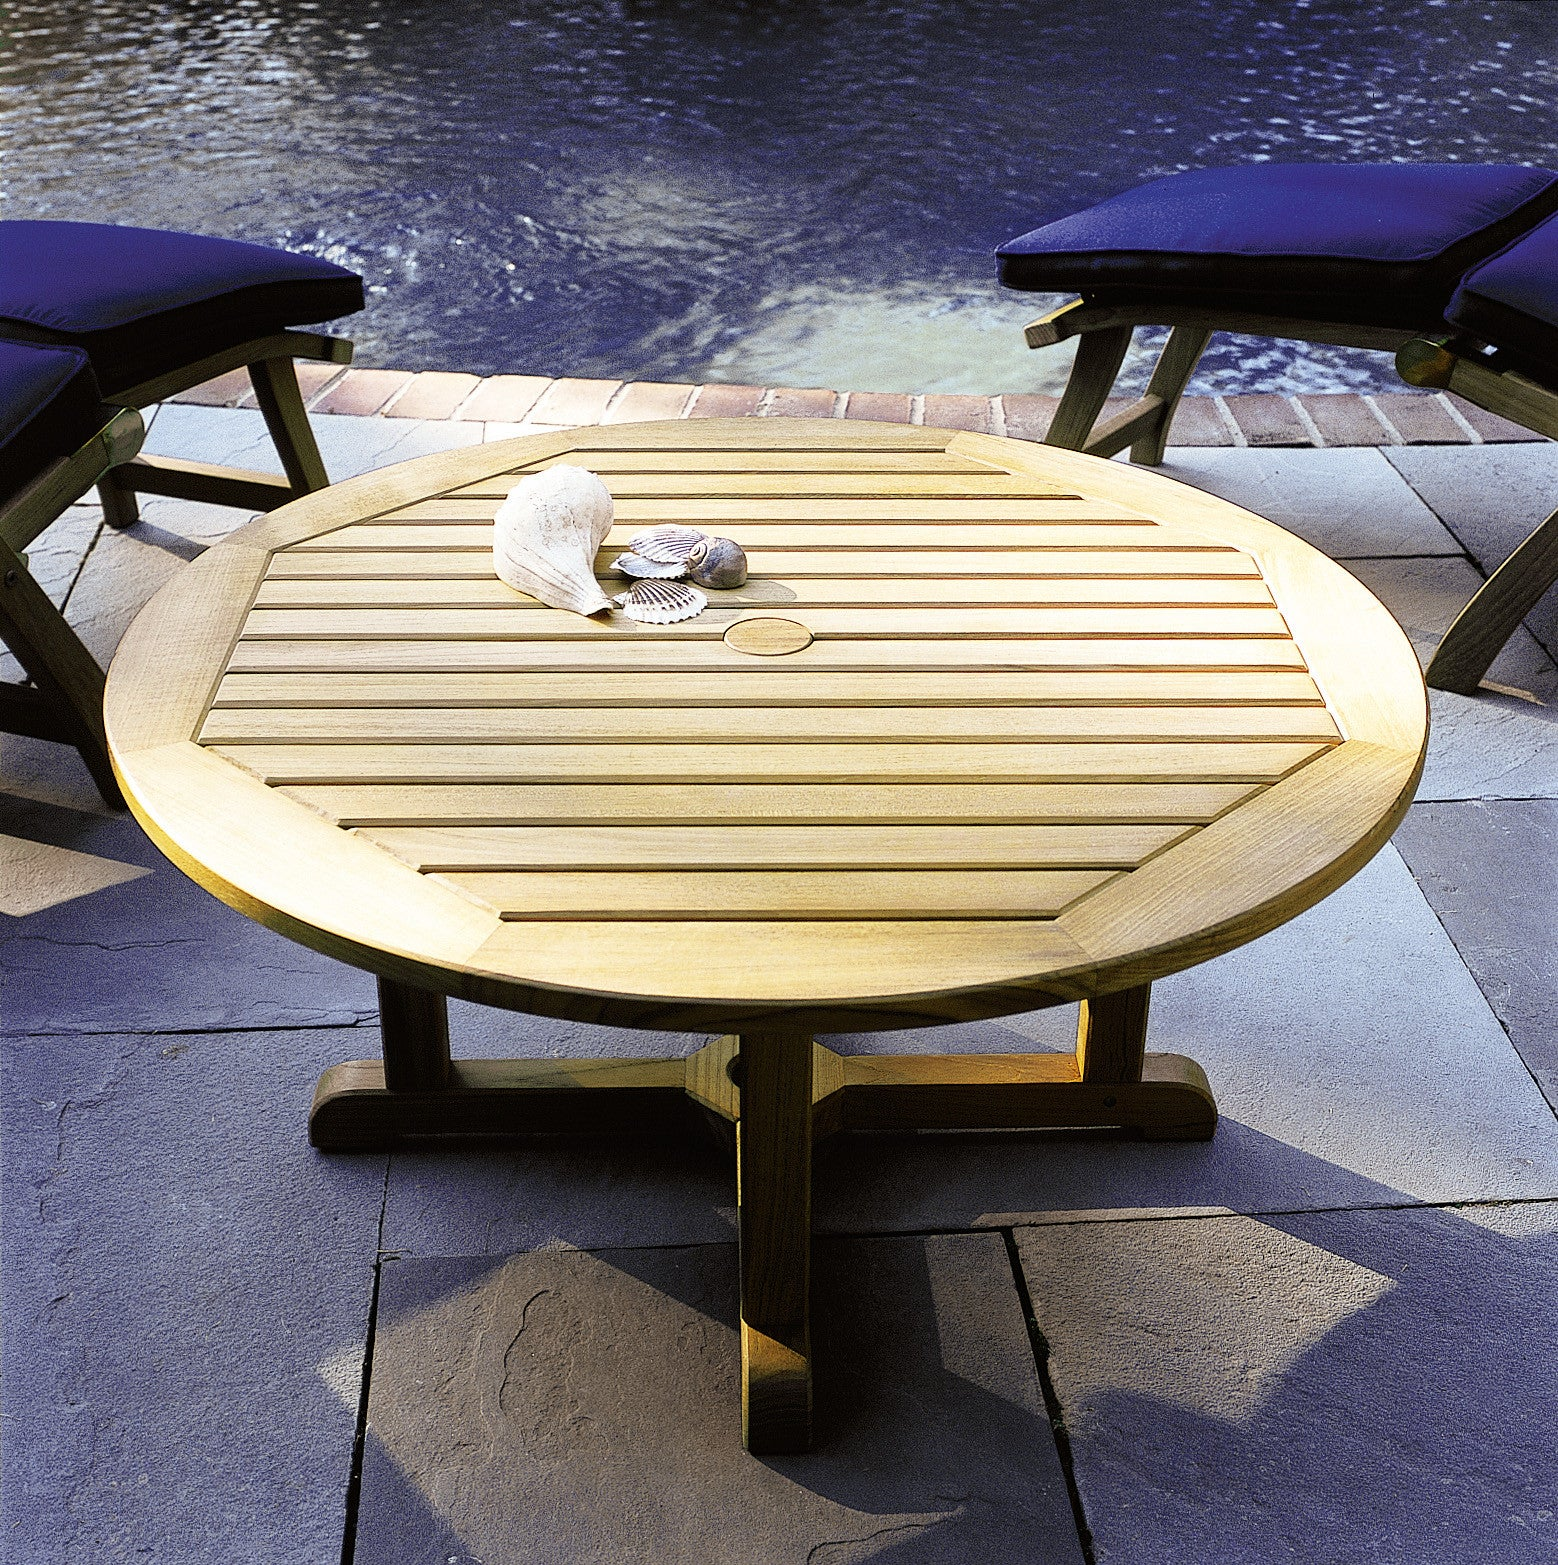 Kingsley bate essex round coffee table 42 vineyard decorators kingsley bate essex round coffee table 42 geotapseo Image collections